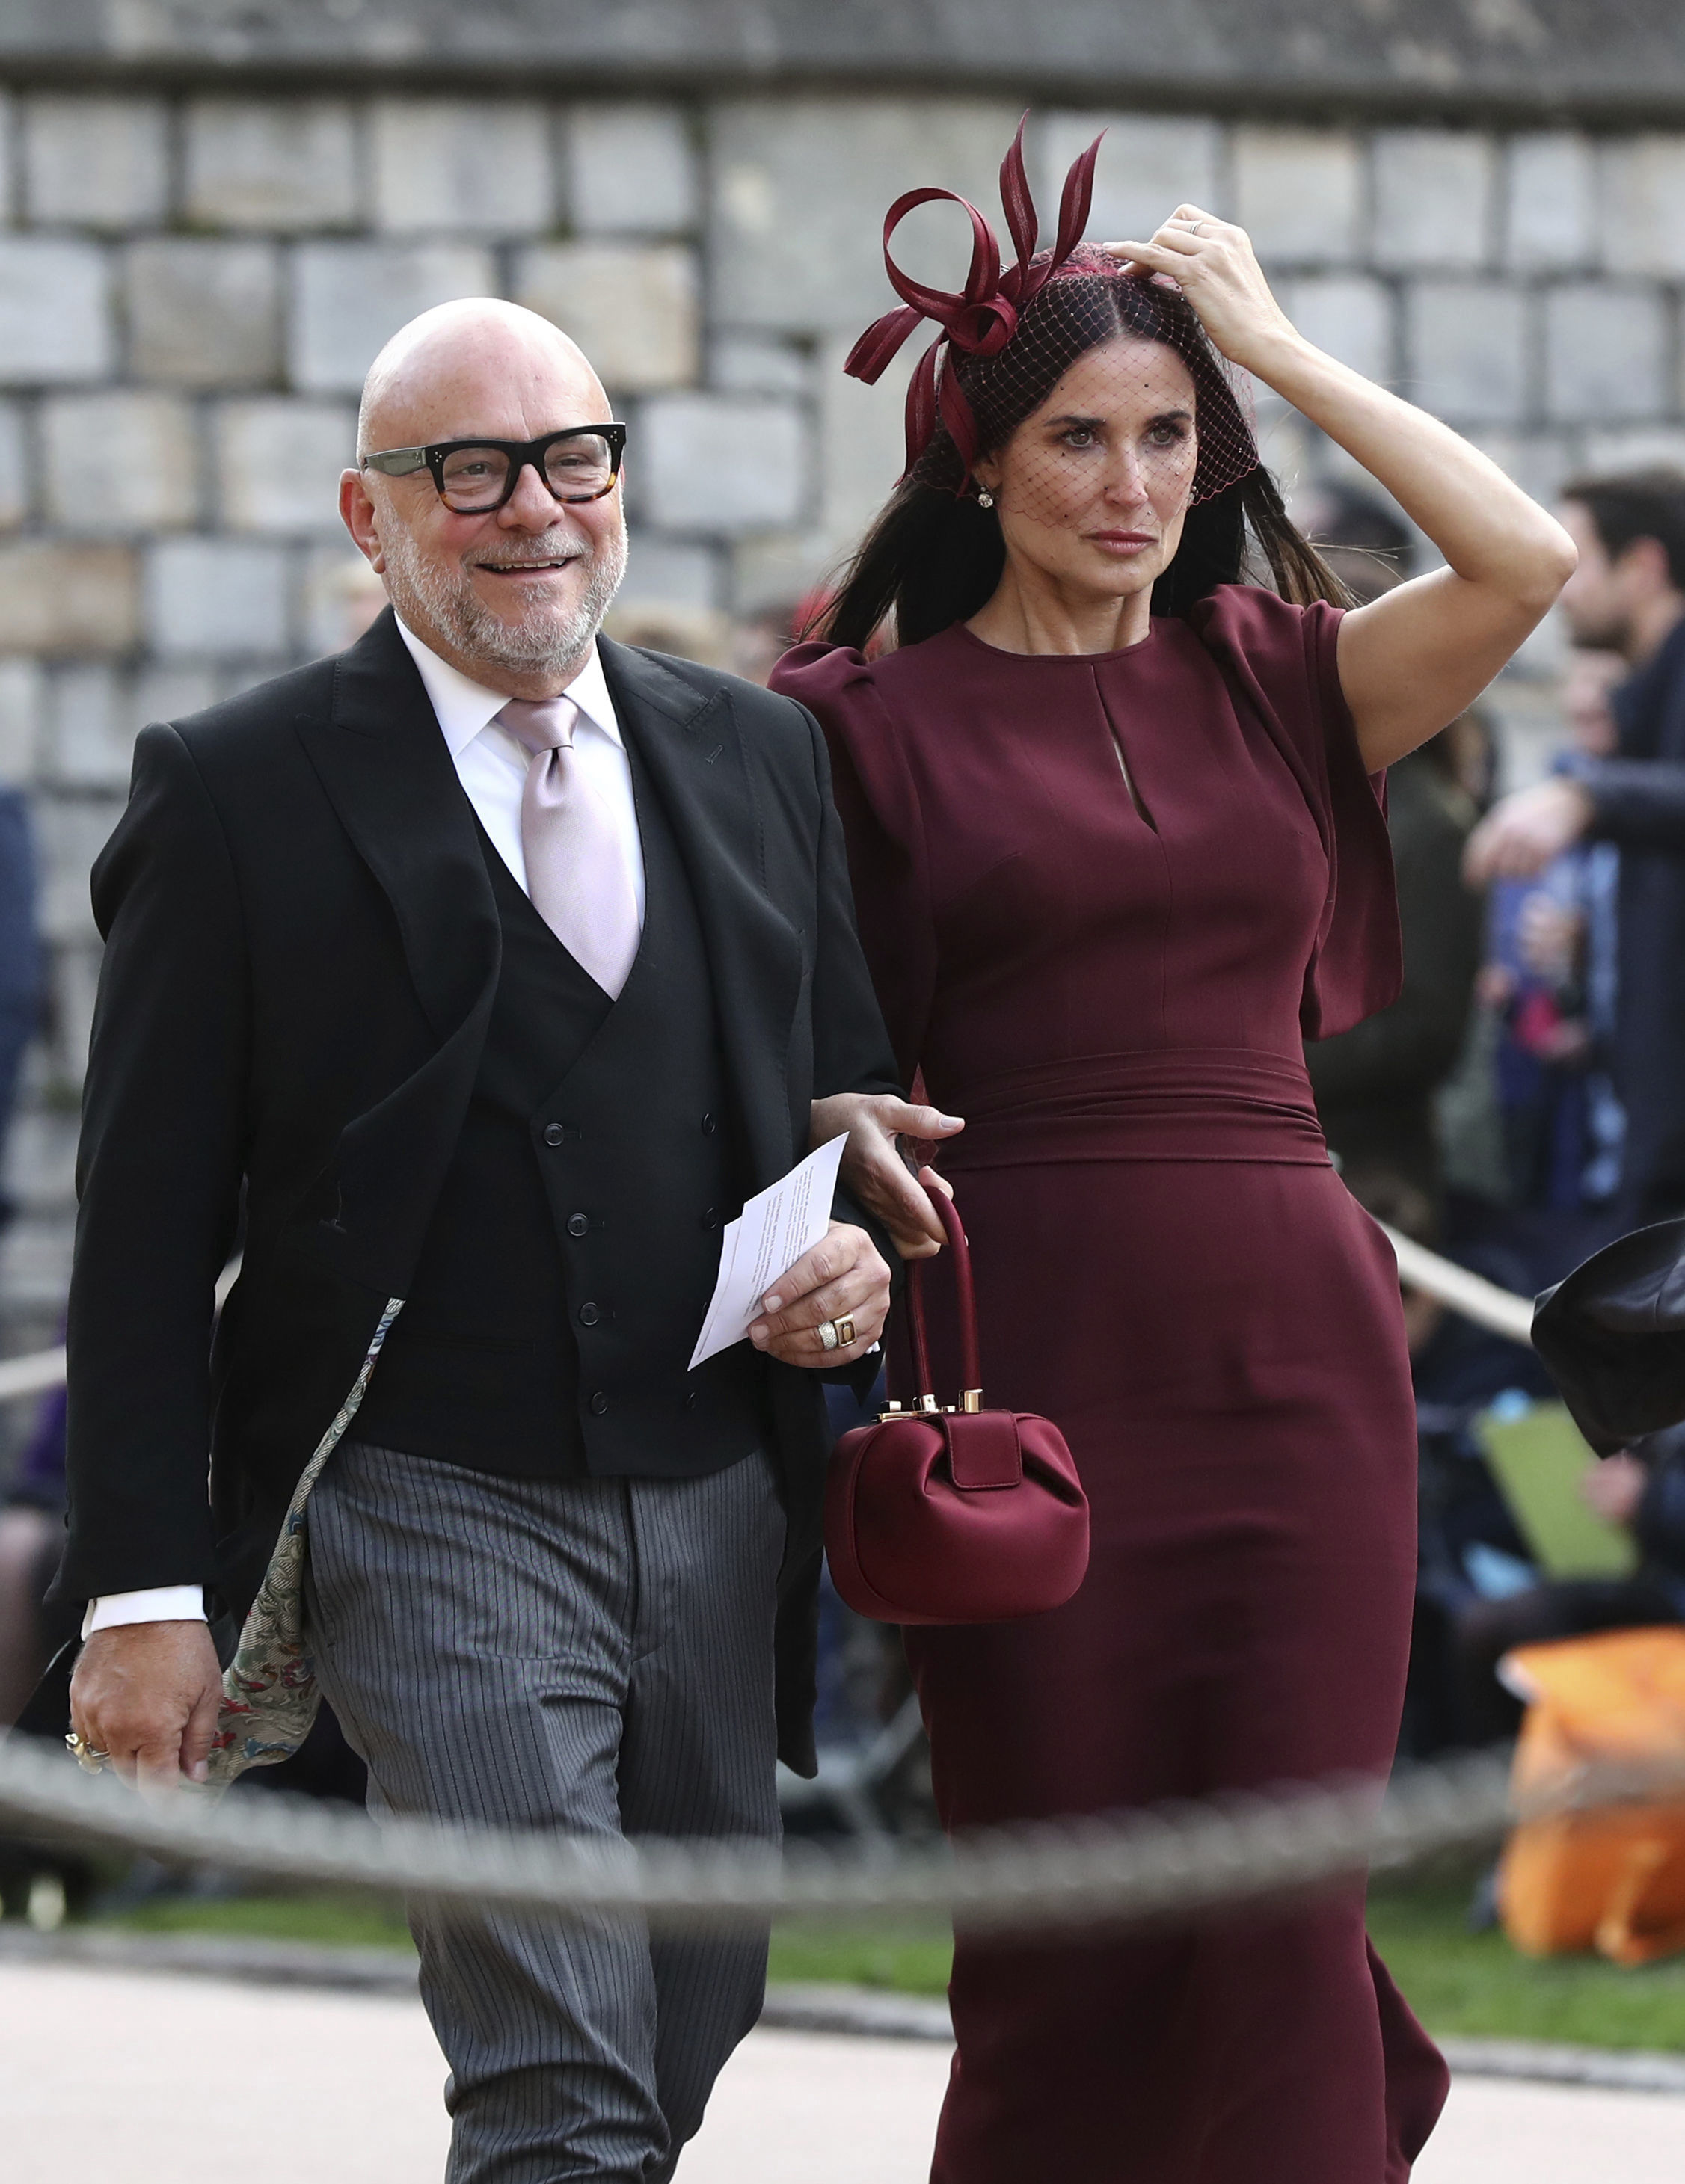 <div class='meta'><div class='origin-logo' data-origin='none'></div><span class='caption-text' data-credit='Gareth Fuller/Pool via AP'>Demi Moore arrives ahead of the wedding of Princess Eugenie of York and Jack Brooksbank at St George's Chapel, Windsor Castle, near London, England, Friday Oct. 12, 2018.</span></div>